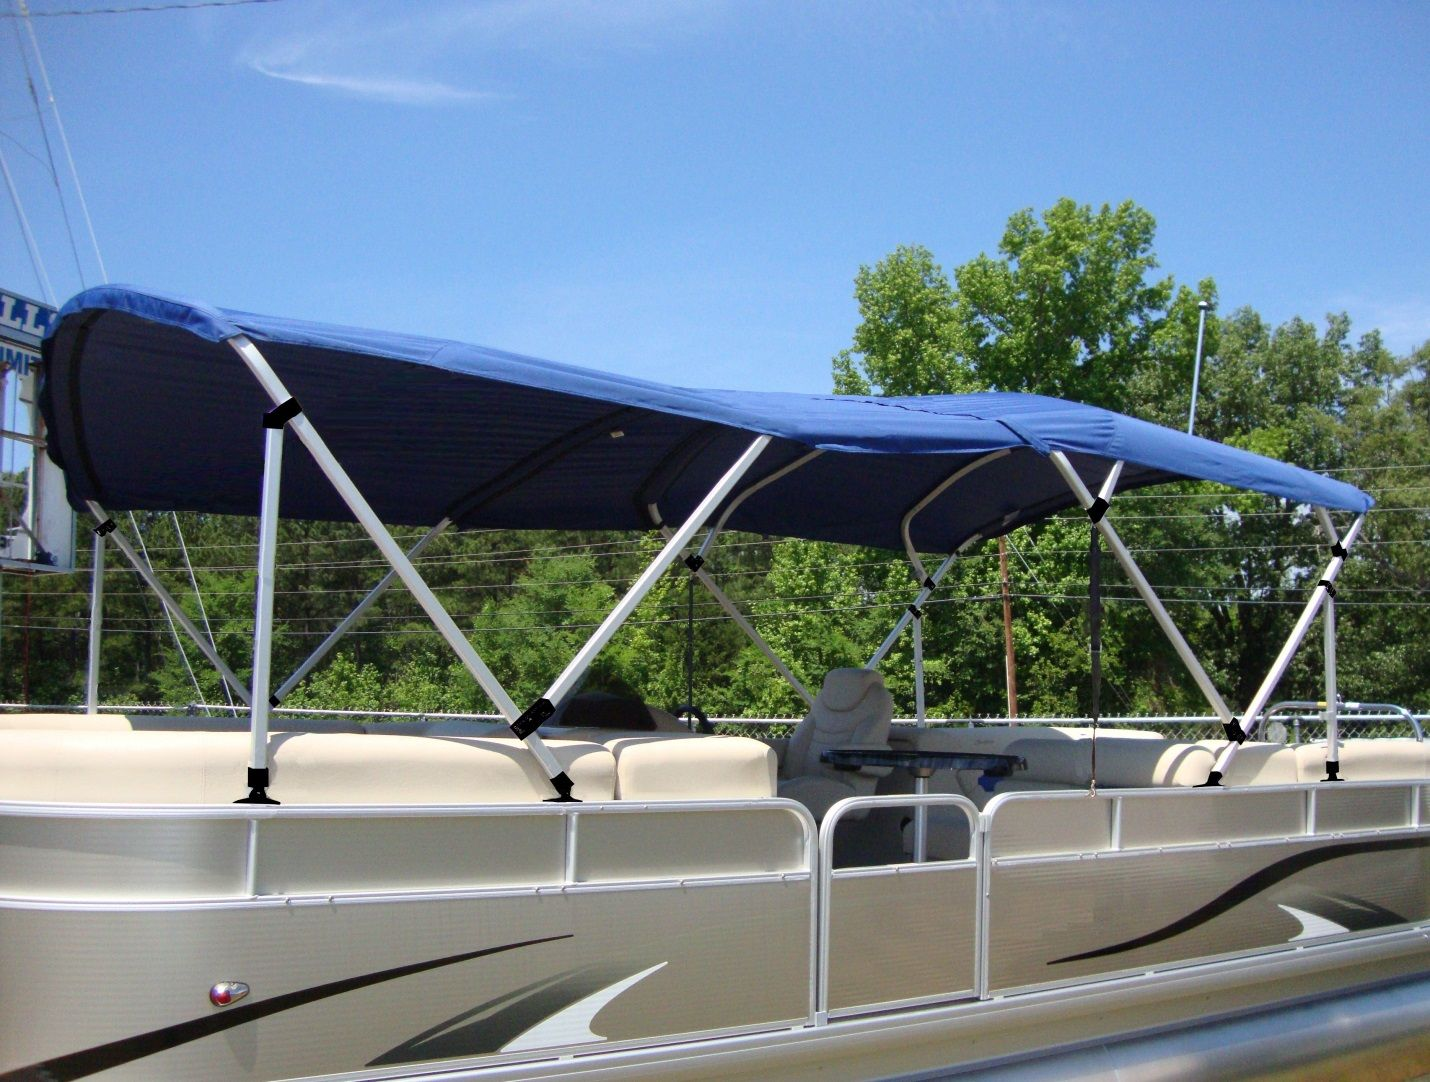 Check out our Dual Pontoon Bimini Top. Full coverage for the entire boat!  & Check out our Dual Pontoon Bimini Top. Full coverage for the ...